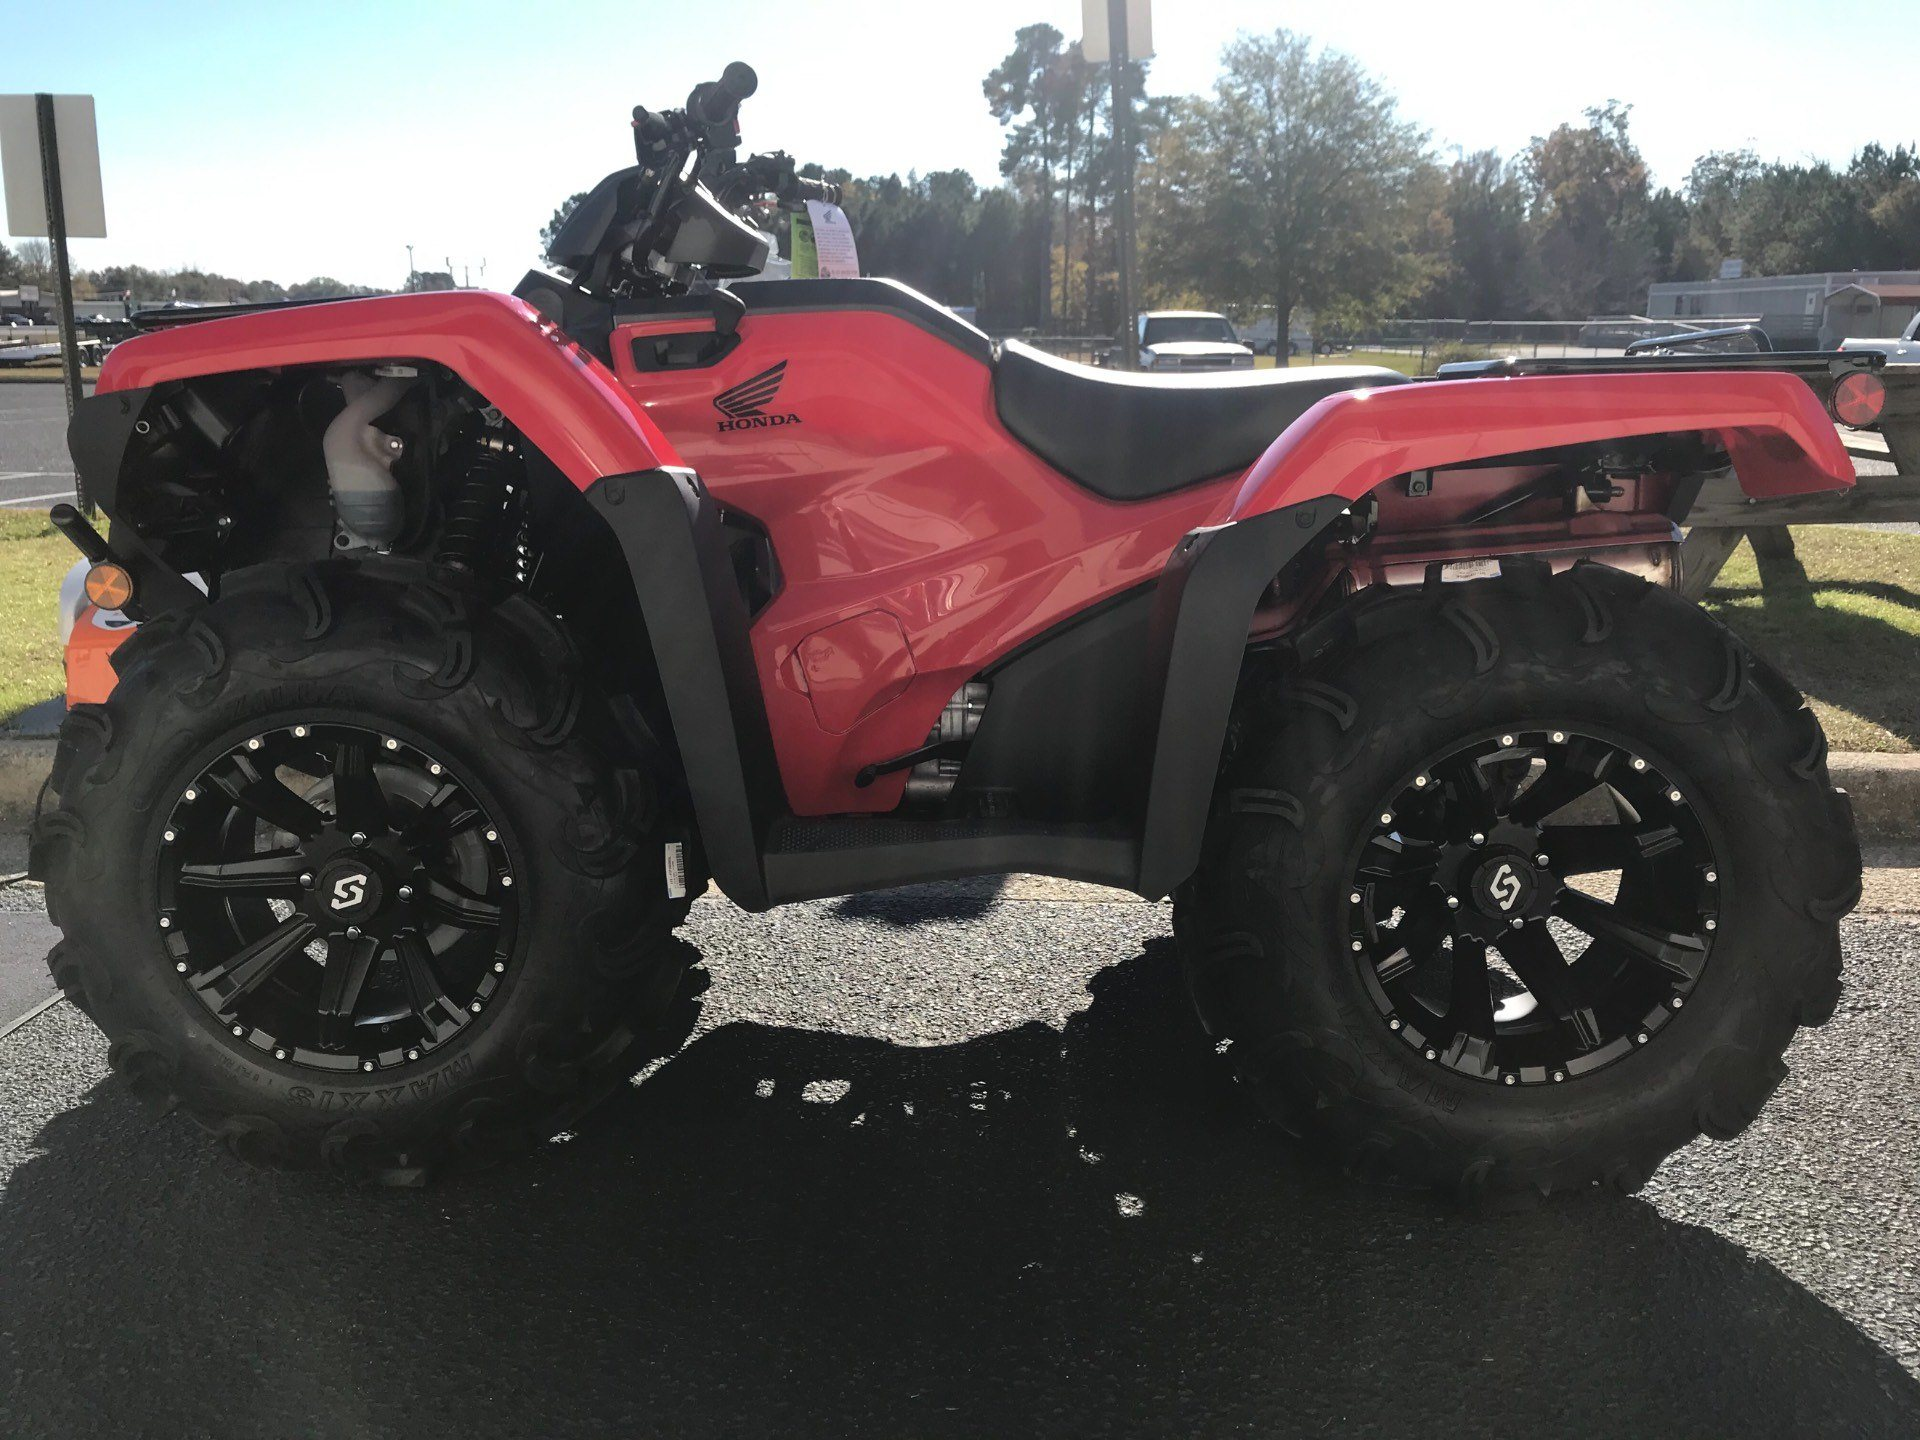 2019 Honda FourTrax Rancher 4x4 in Greenville, North Carolina - Photo 7